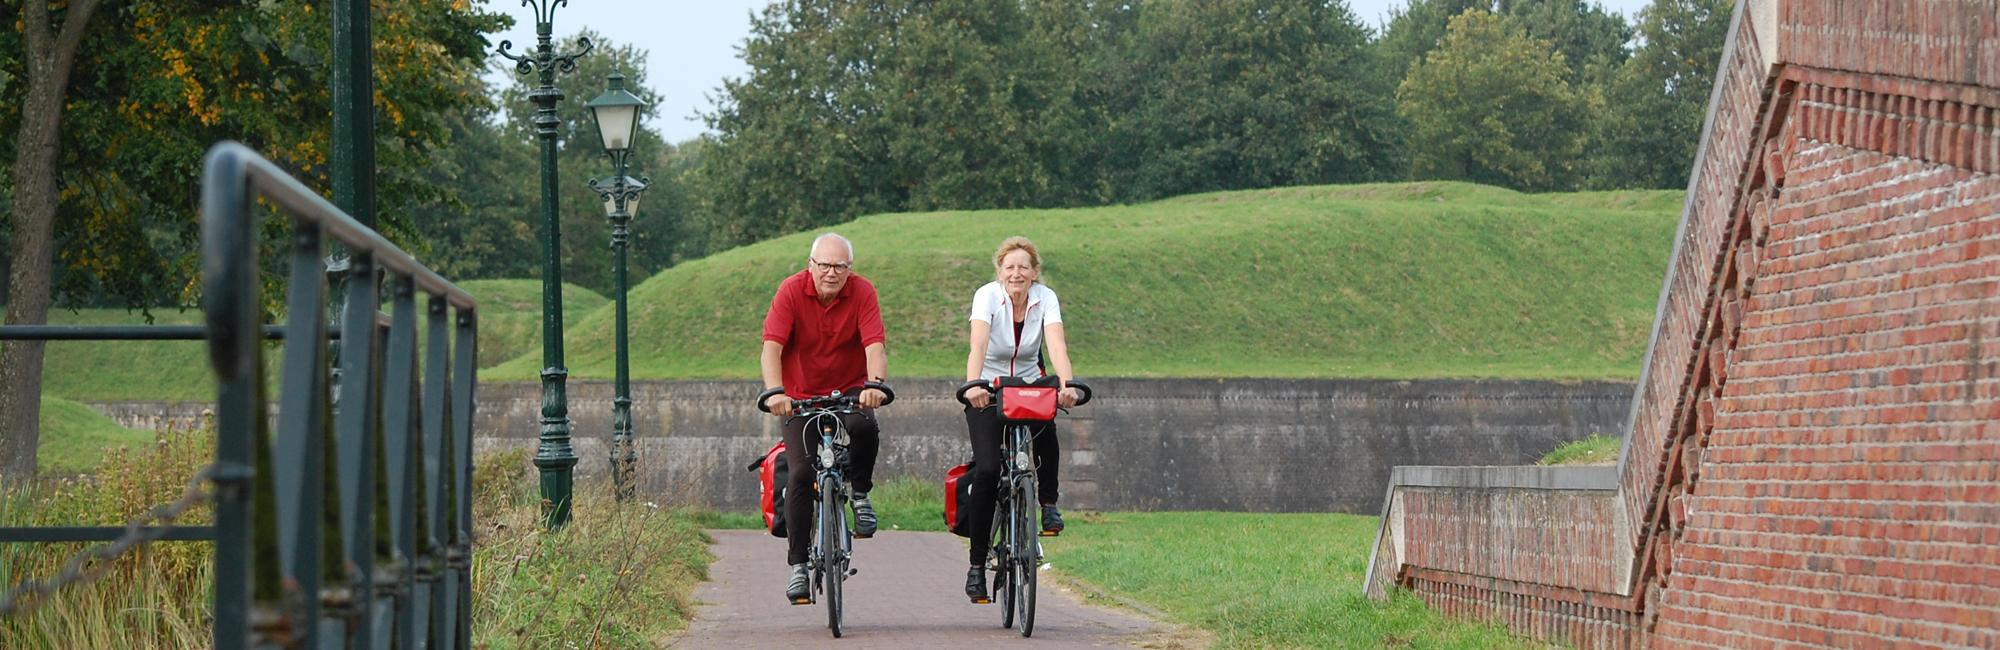 Fietsvakanties in Nederland - Dutch Bike Tours